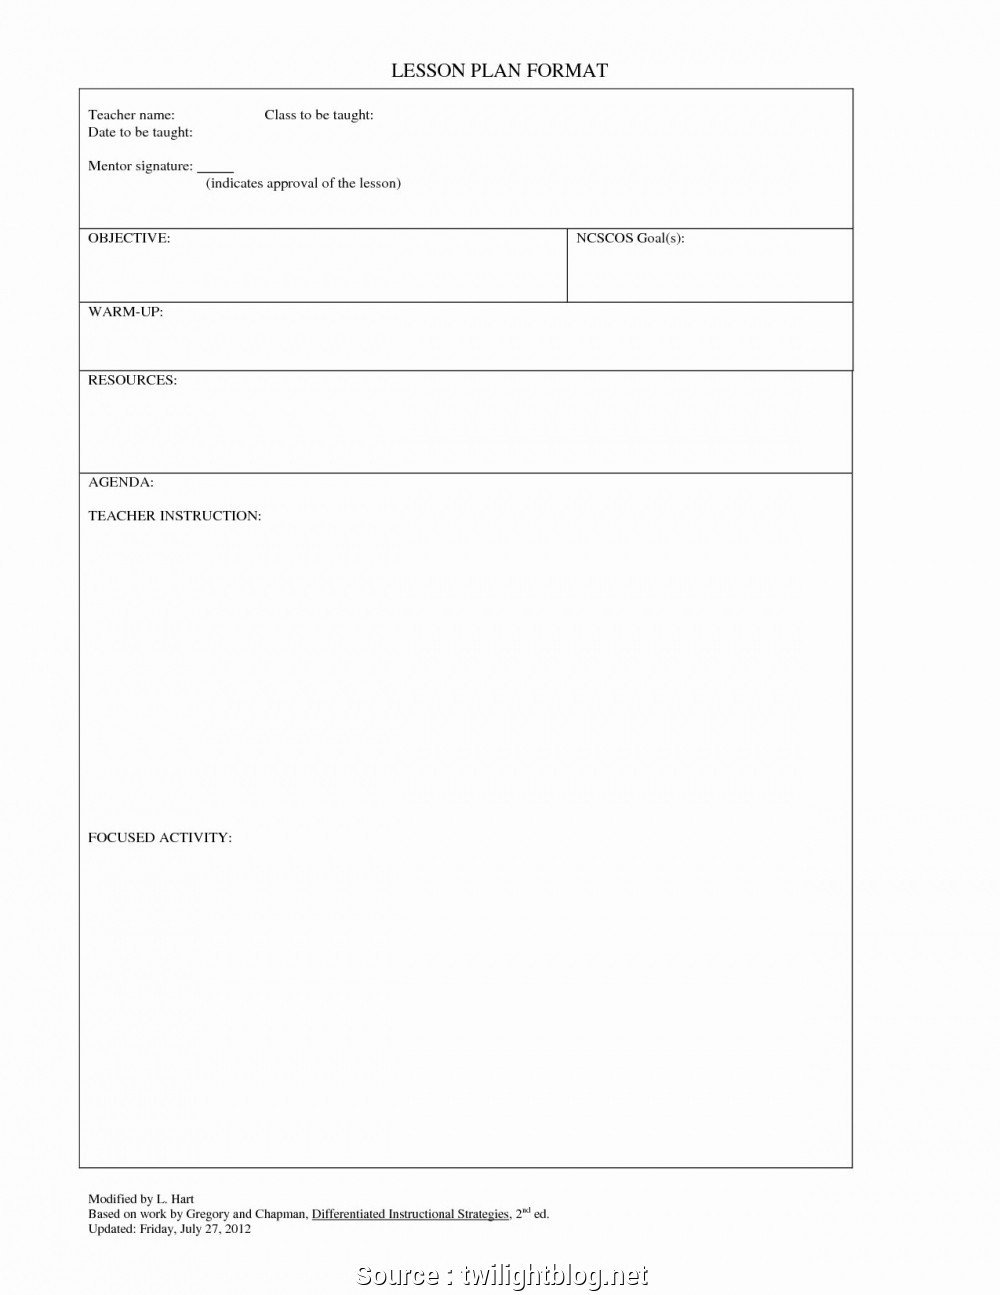 Basic Lesson Plan Template 6 Nice Basic Lesson Plan Template Secondary